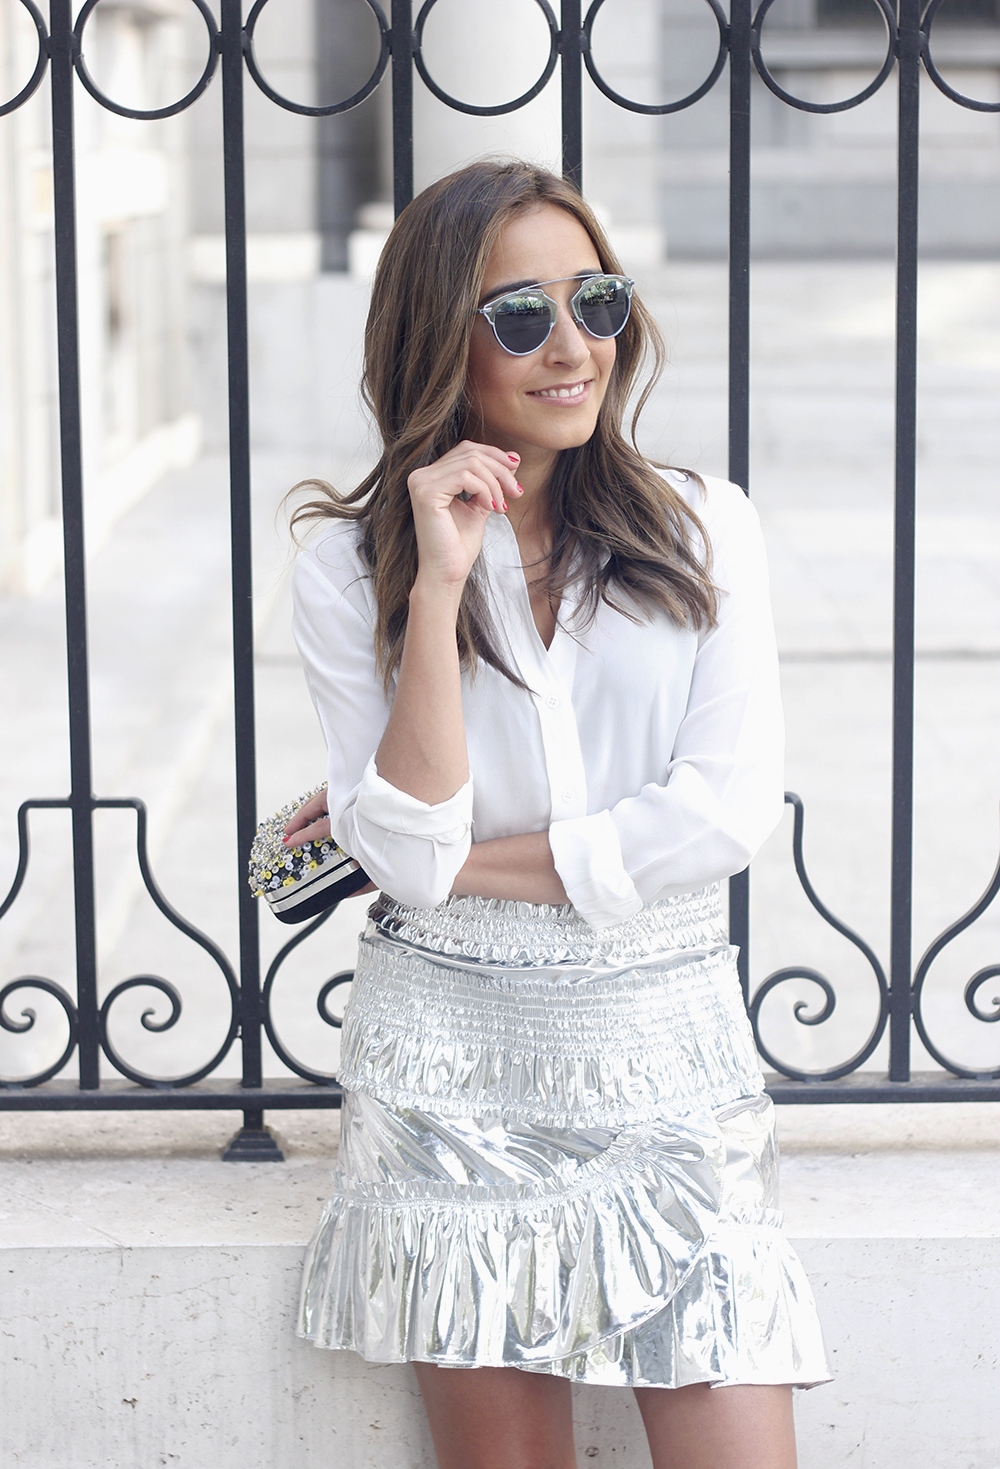 Isabel Marant Metallic Skirt white shirt nude sandals dior so real sunnies outfit style fashion08